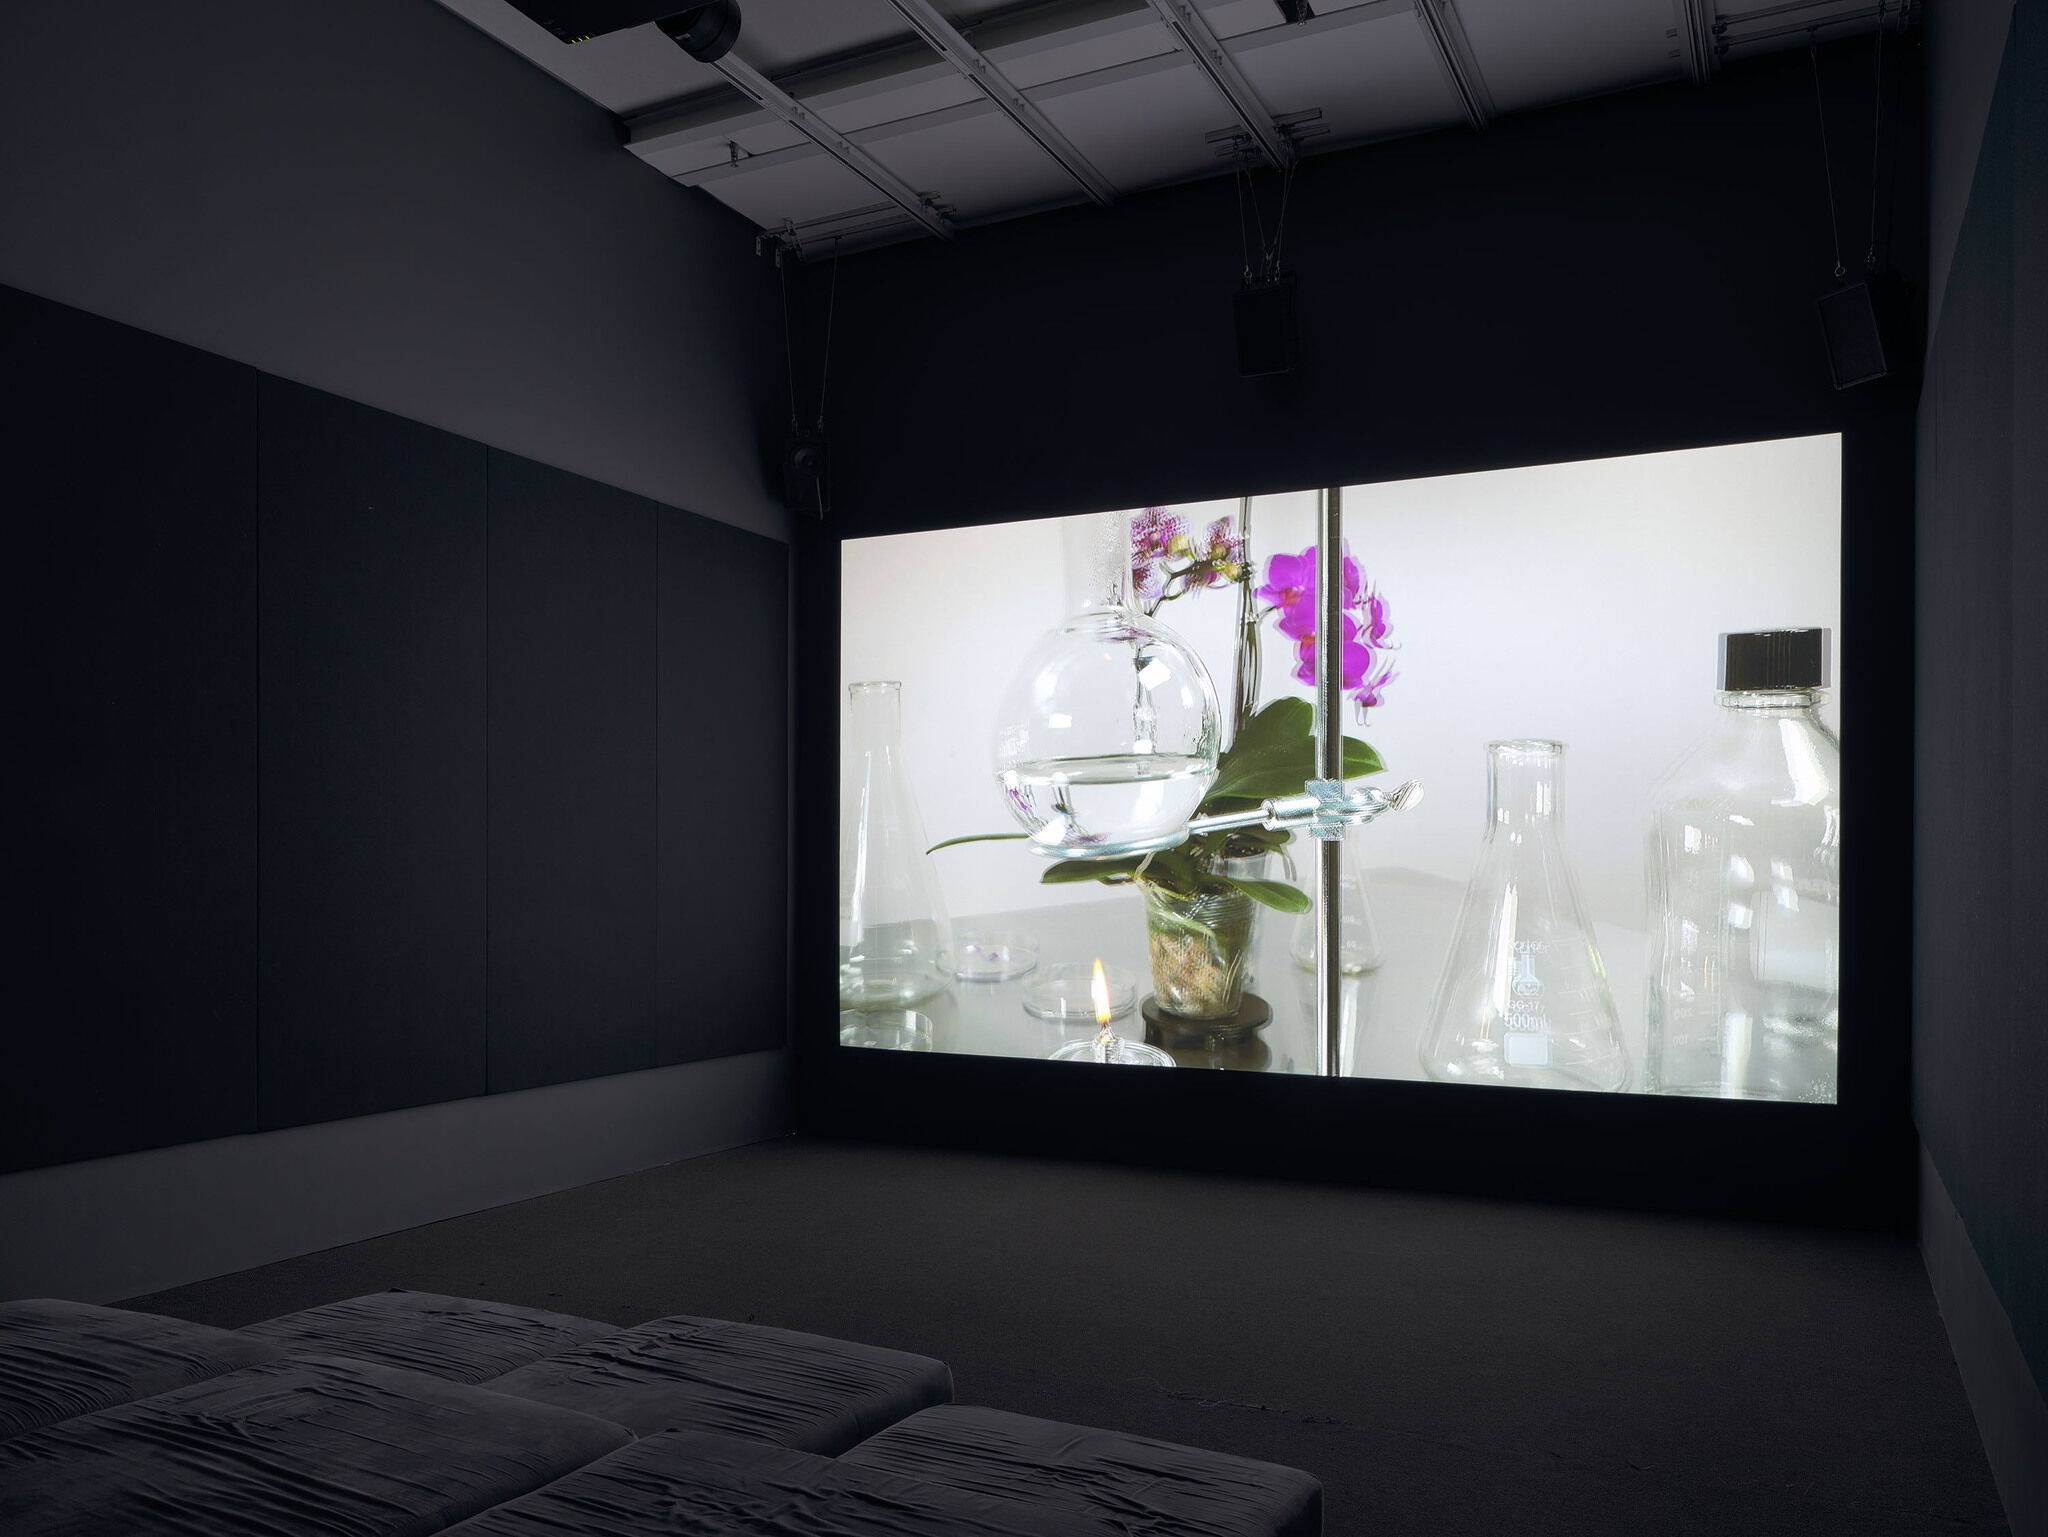 A screen playing a video in a dark room.